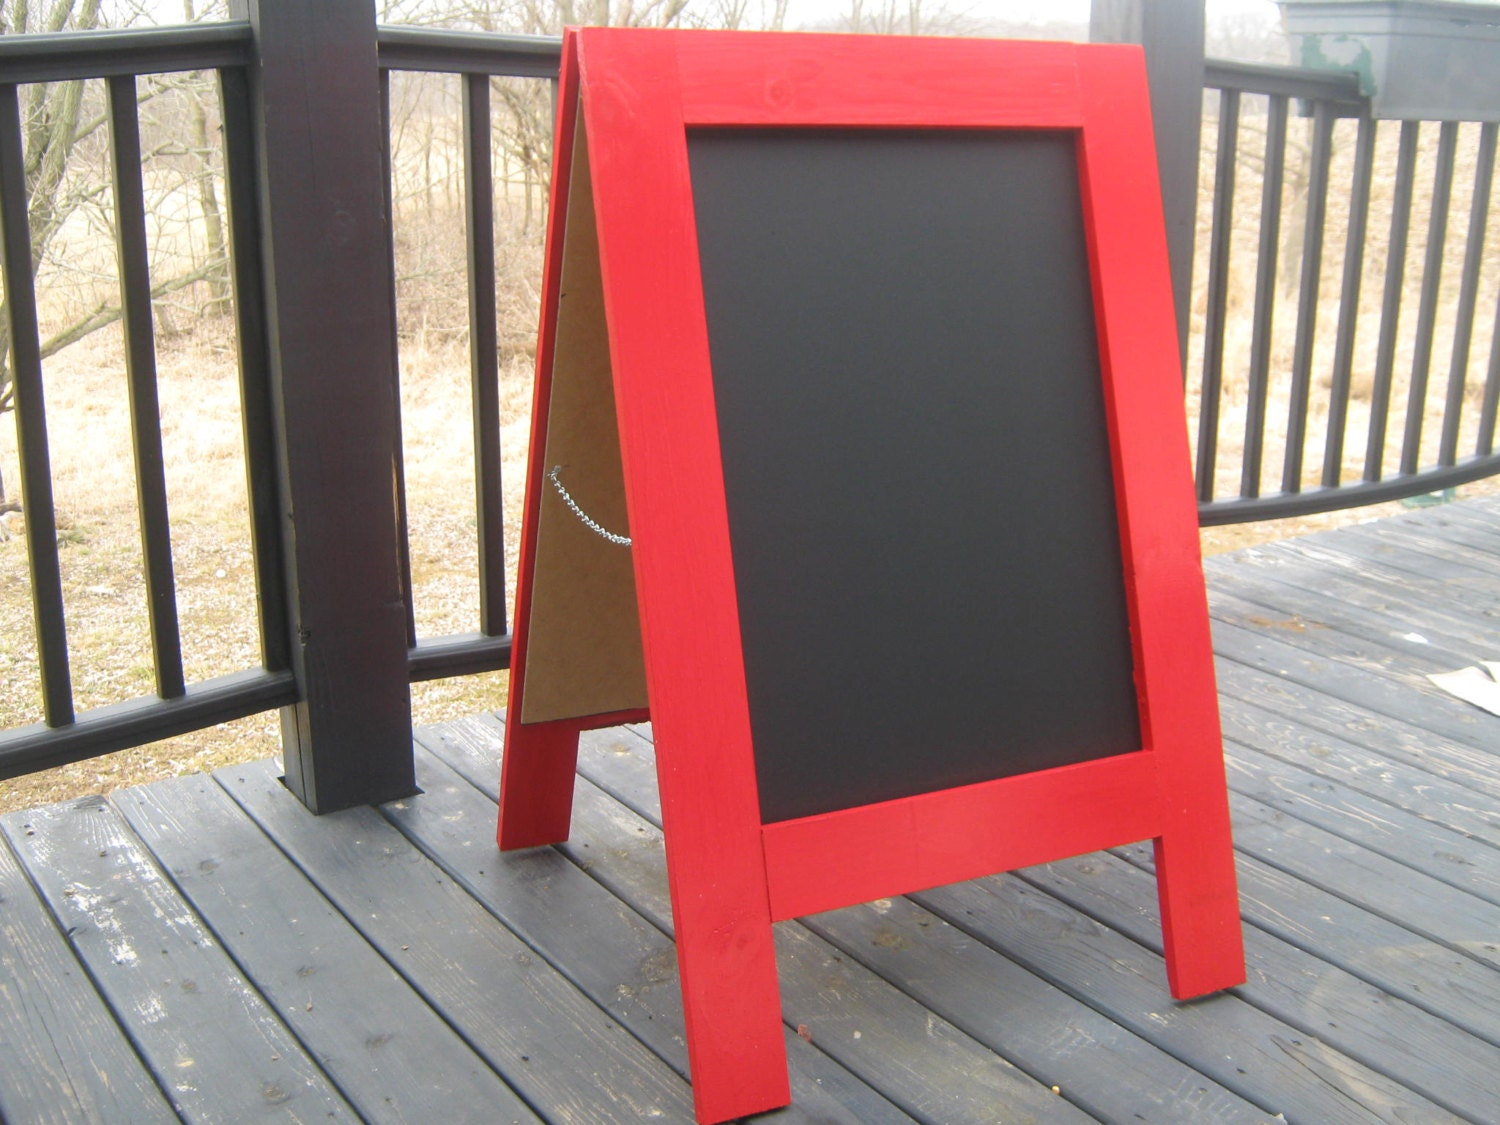 Two sided chalkboard sandwich board business sign handmade